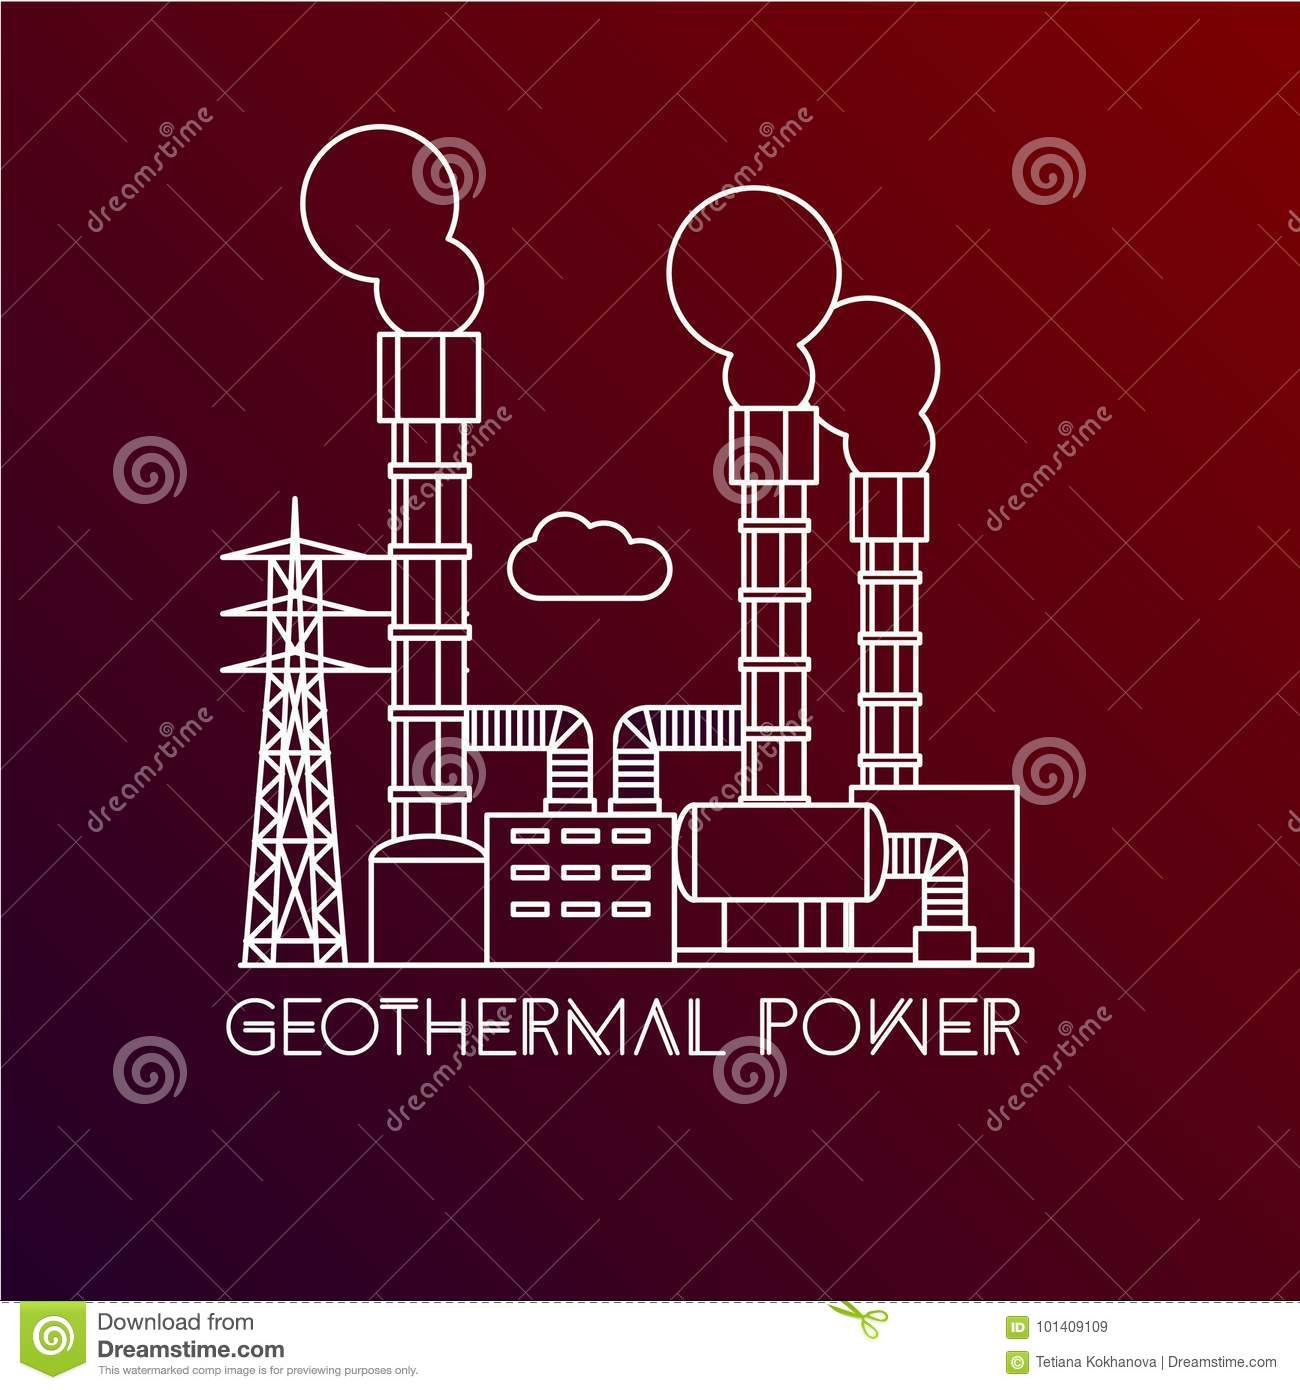 Geothermal Power Diagram Electrical Wiring Diagrams Plant Block Station Stock Vector Illustration Of Energy Turbine Download